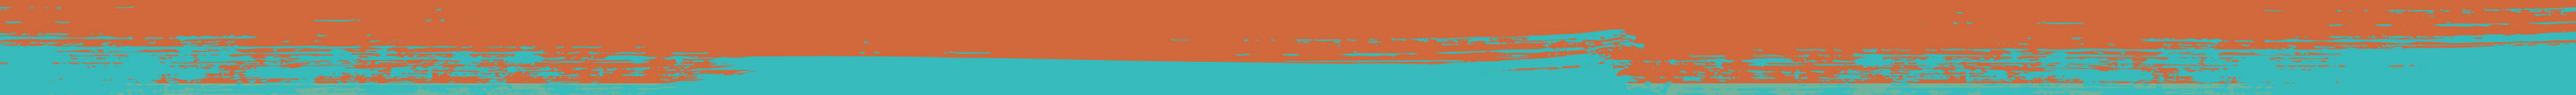 Beyond - Rough Divider Orange to Purina Teal